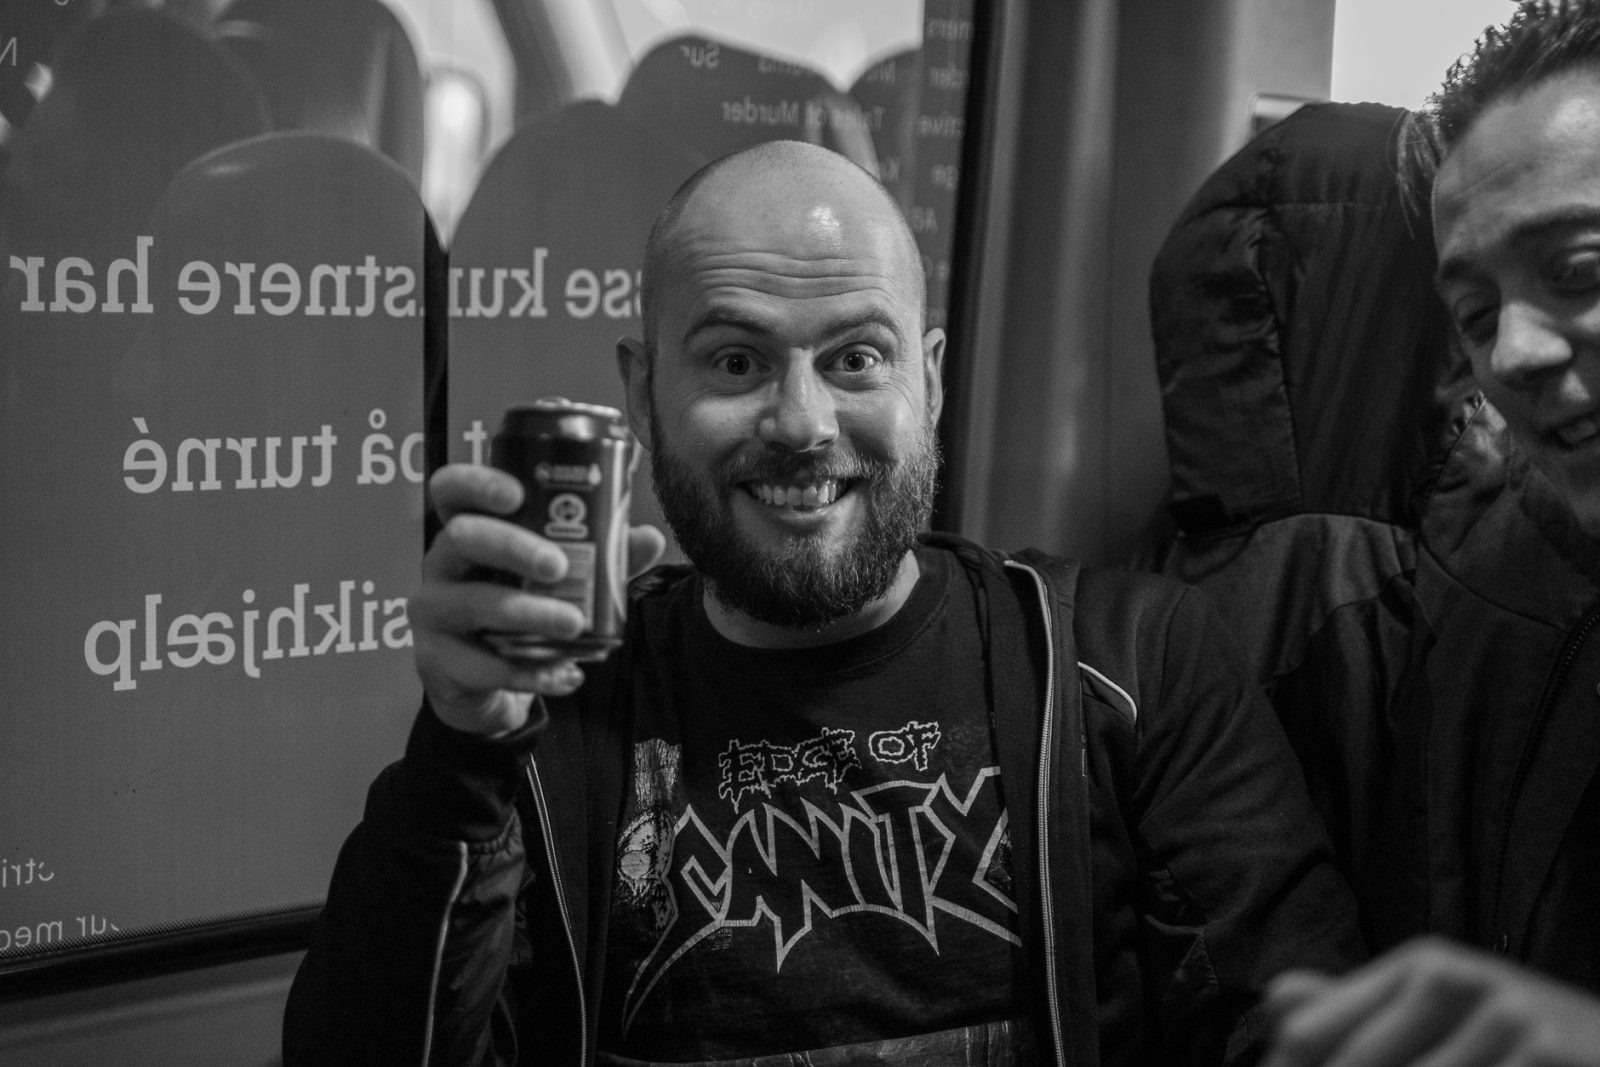 Concert Photography: Casper Villumsen from Electric Hellride with a Tuborg beer in the hand